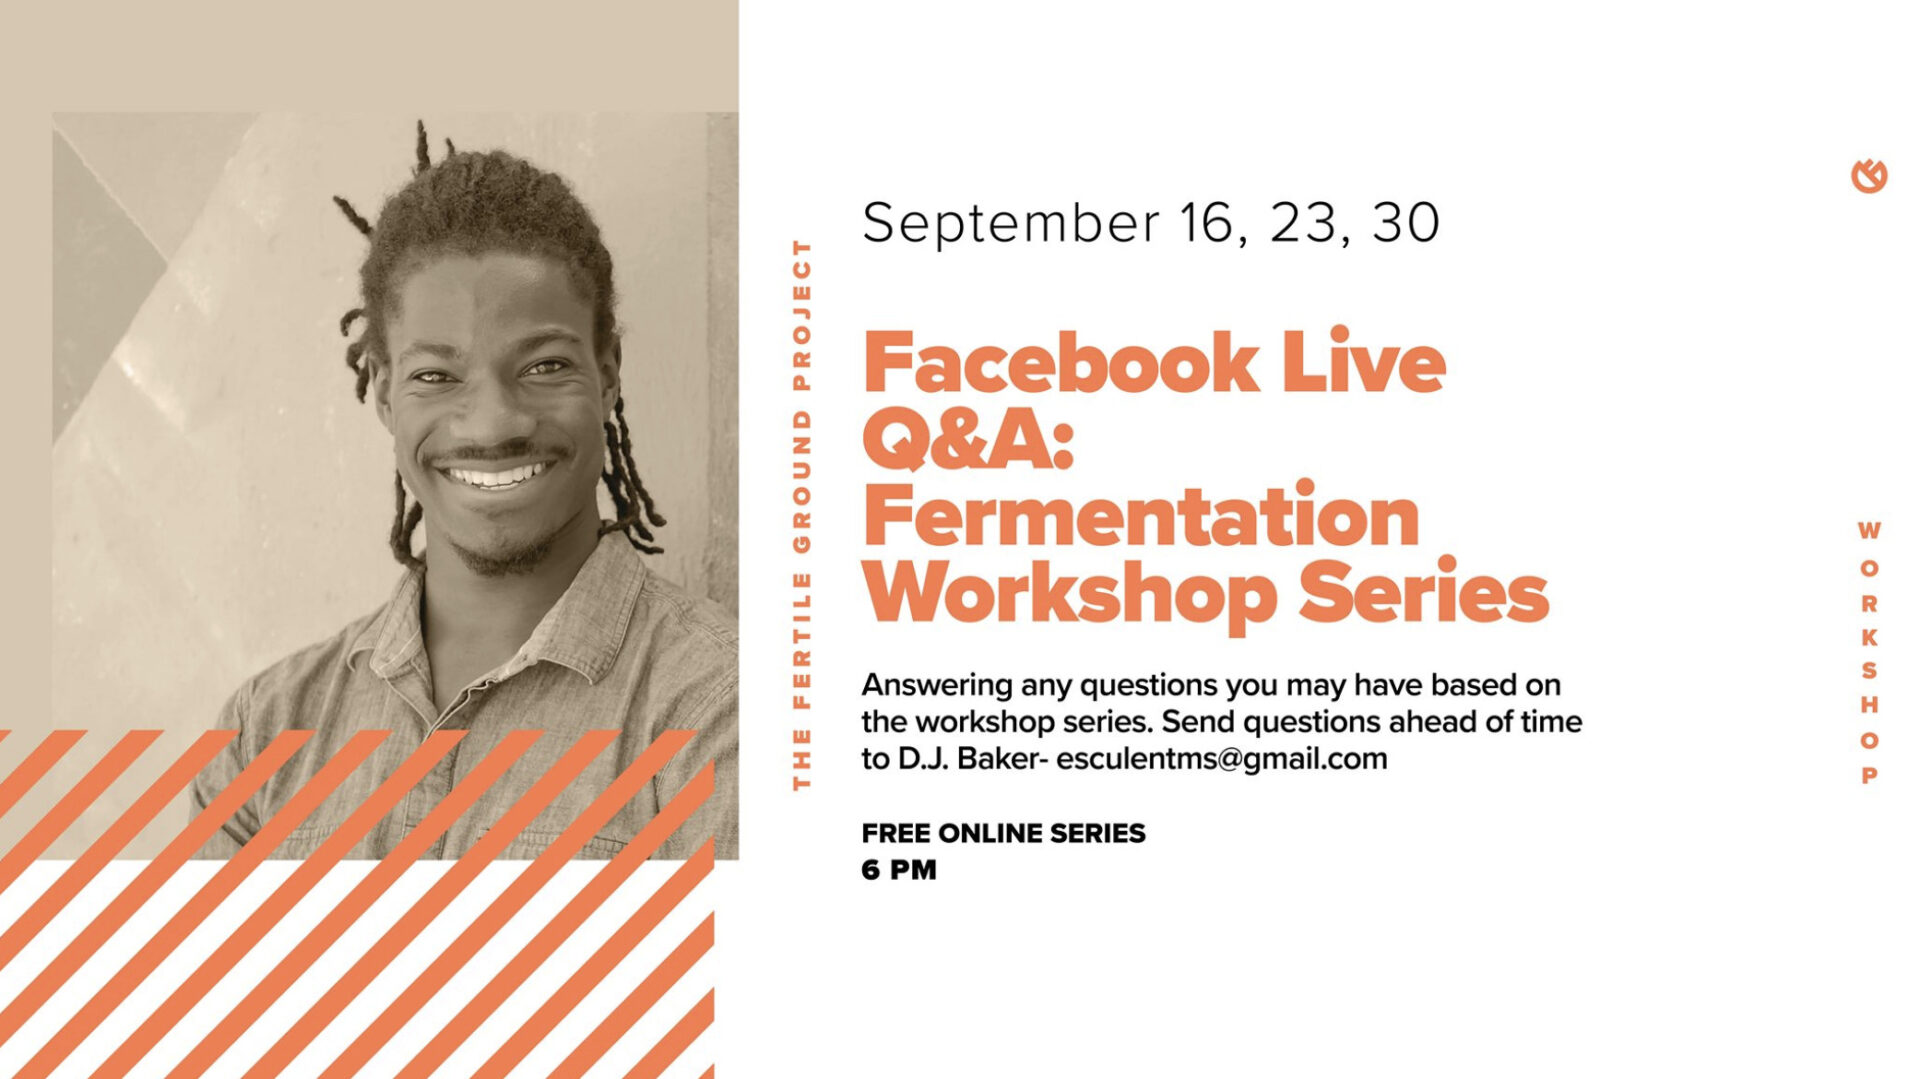 VIRTUAL FERMENTATION WORKSHOP SERIES: Live Q&A